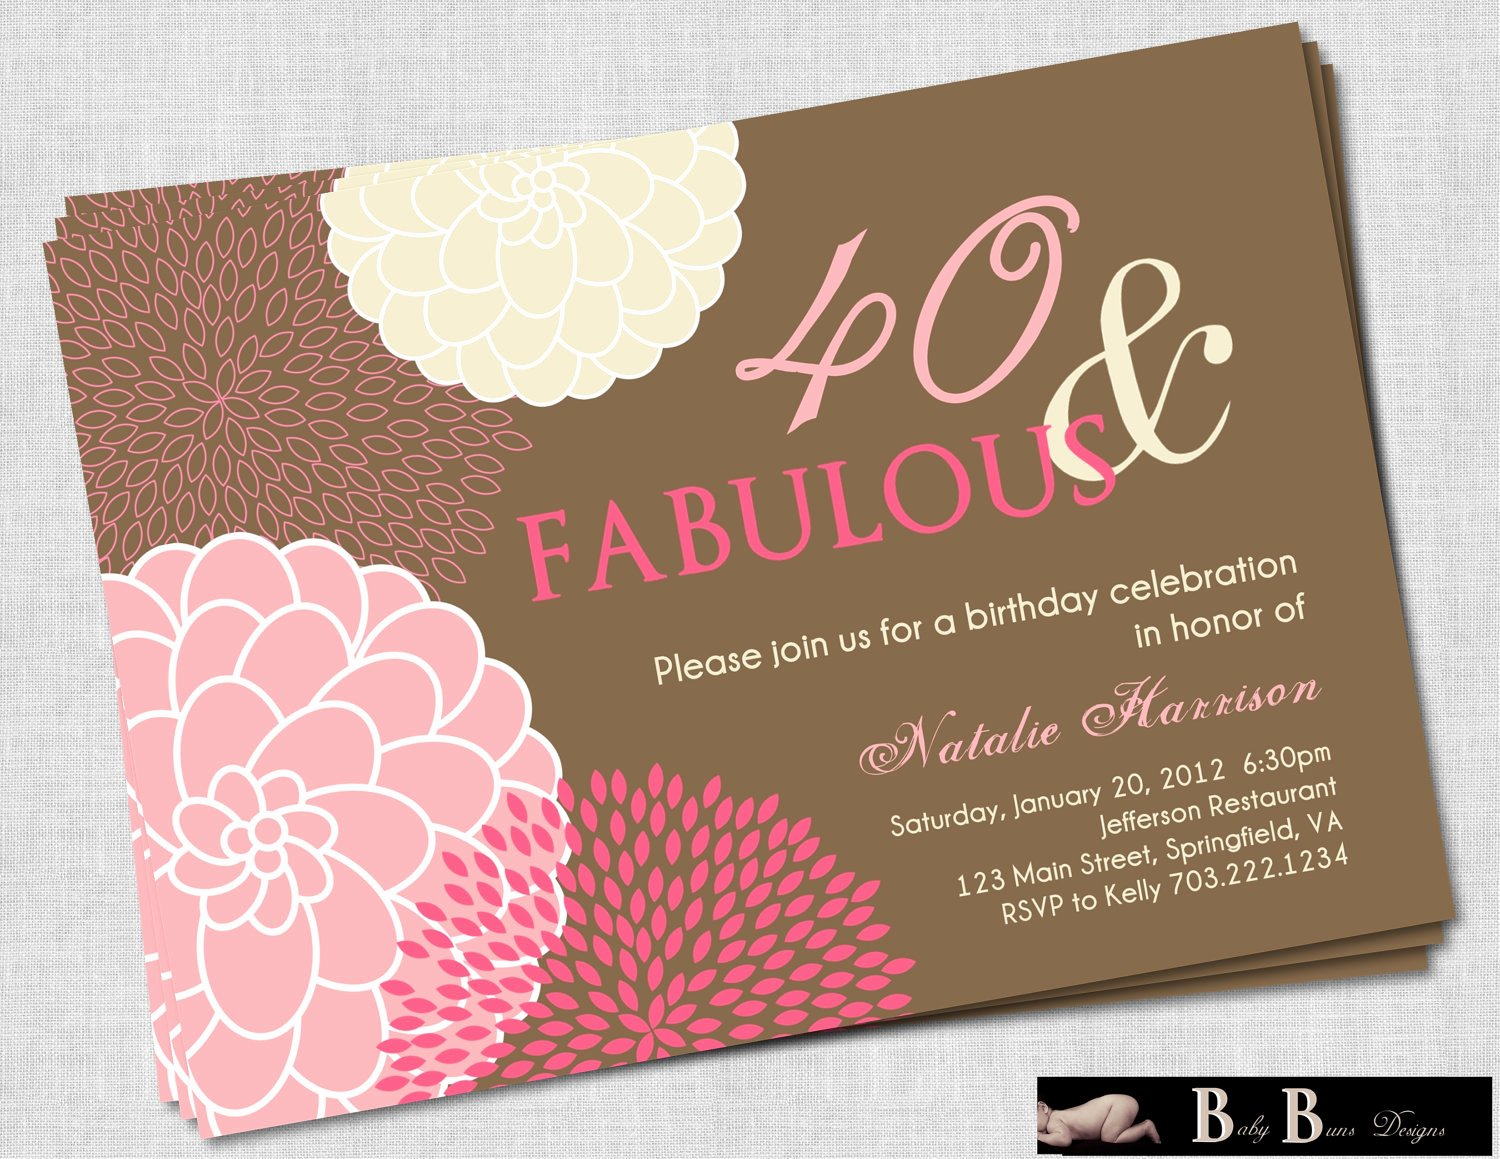 Birthday Invitations for Women Luxury 40th Birthday Invitations for Women Free Invitation Templates Drevio